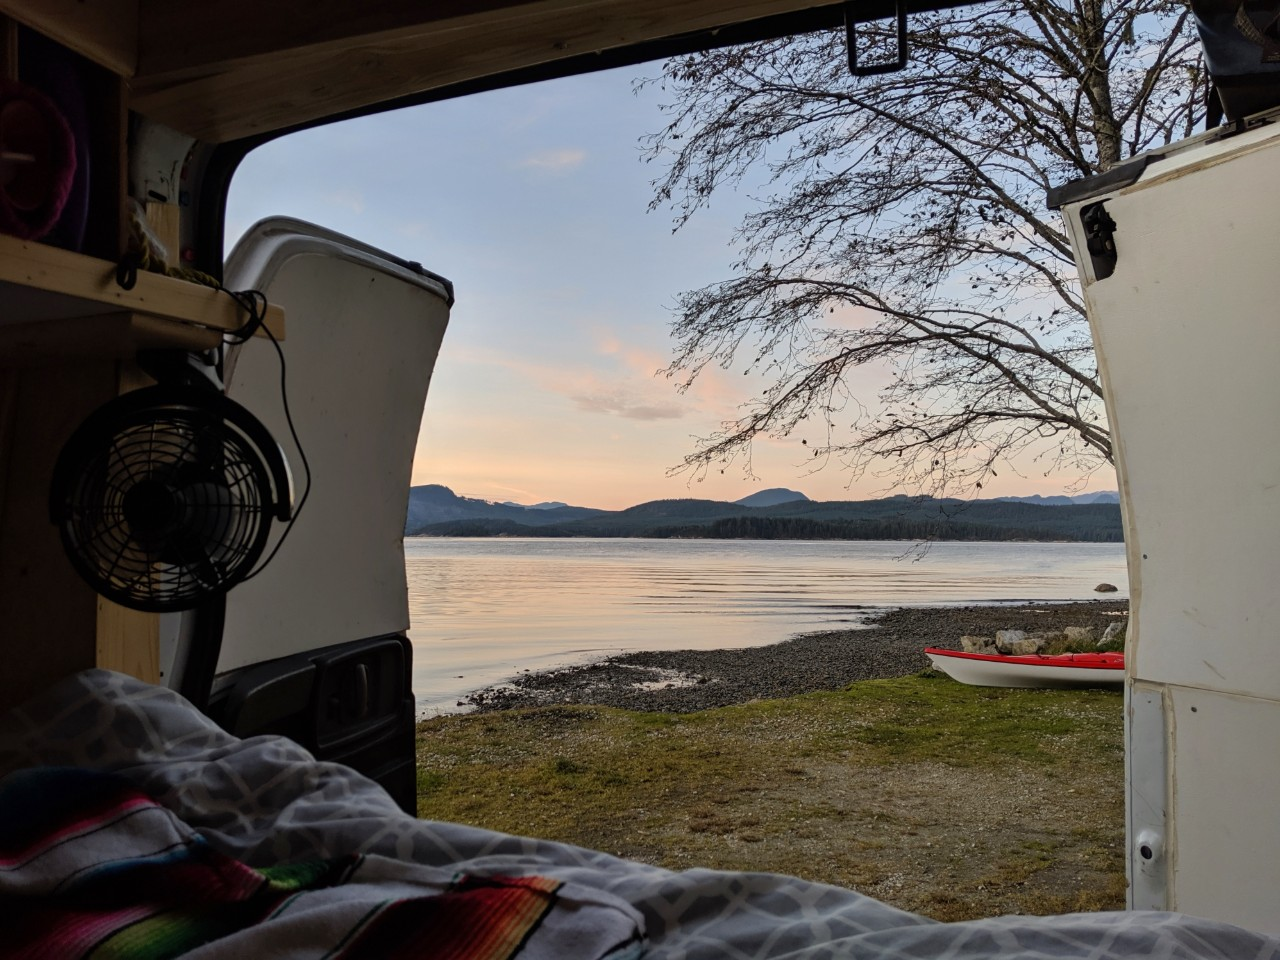 View from back of van with doors open showing coastal scenery on Vancouver Island with calm ocean and kayak on grass next to water